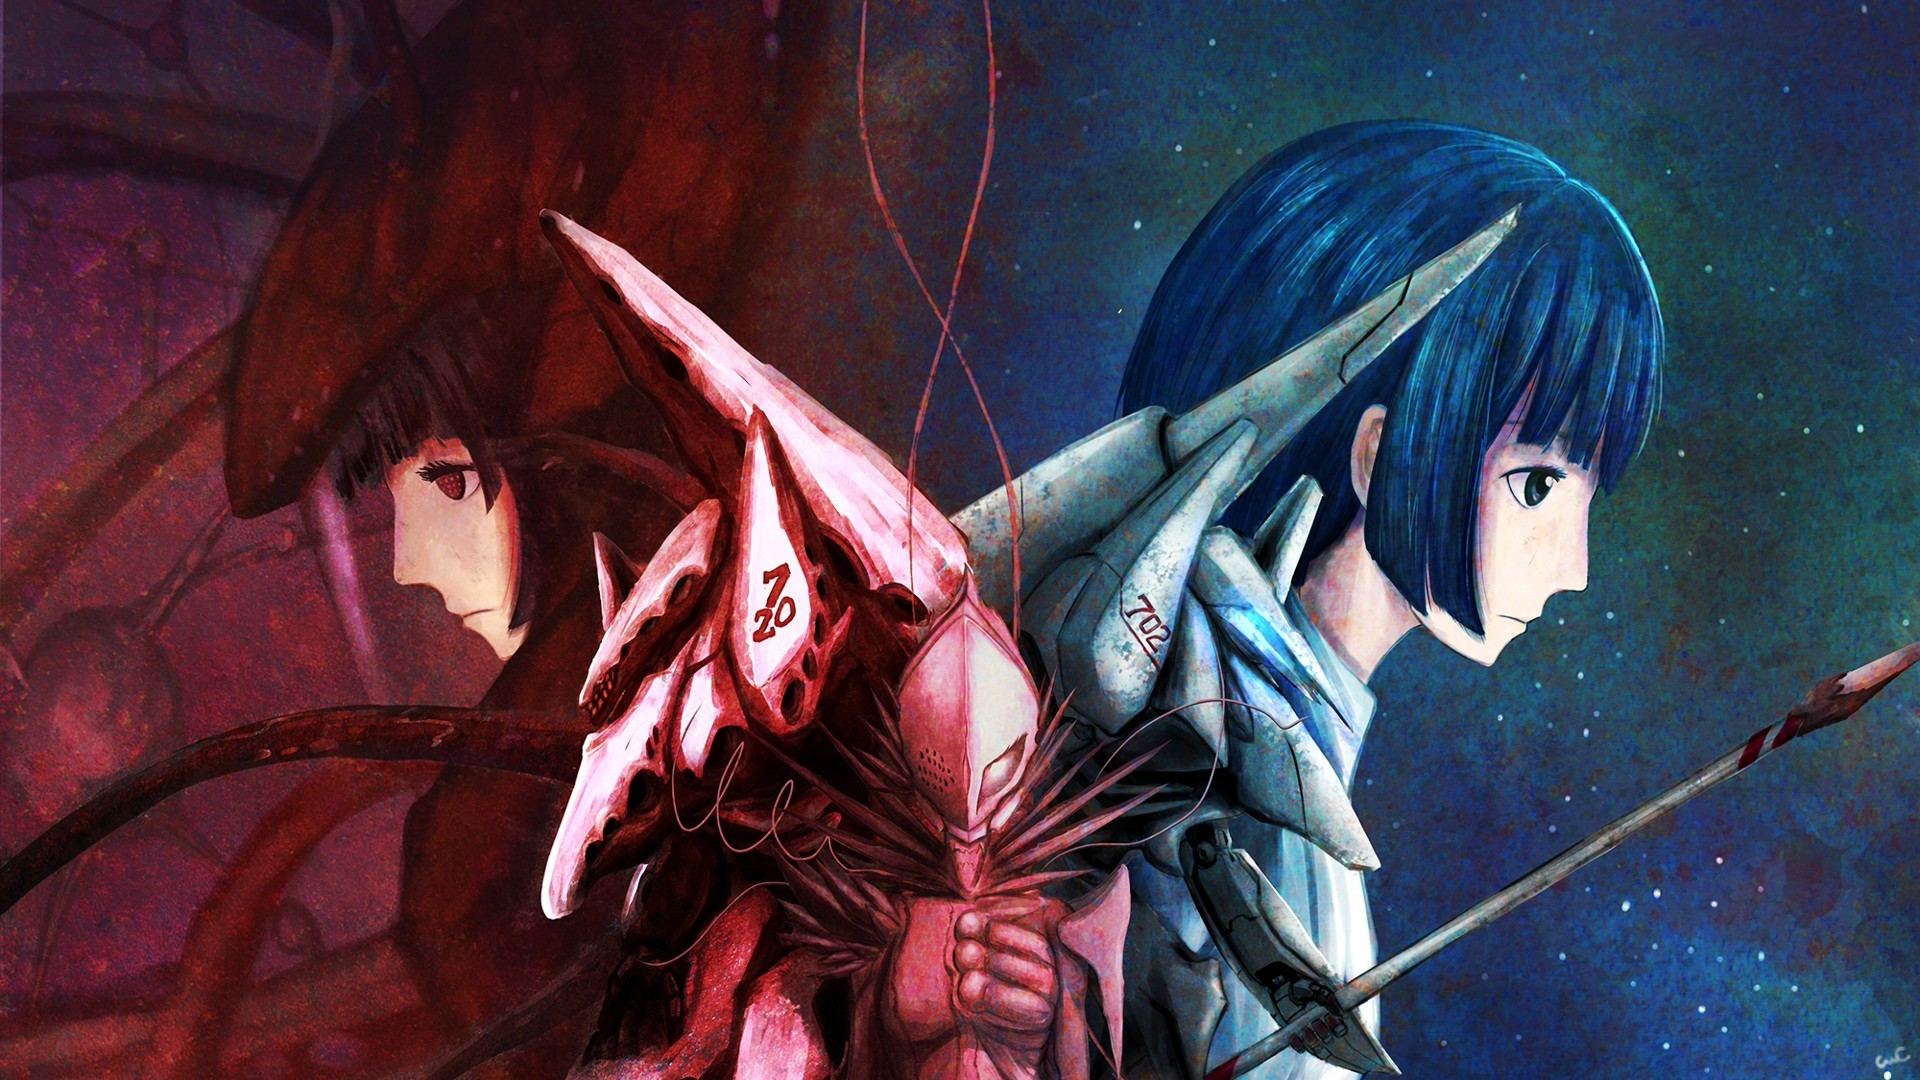 1080p anime wallpapers 74 images - Anime 1920x1080 ...